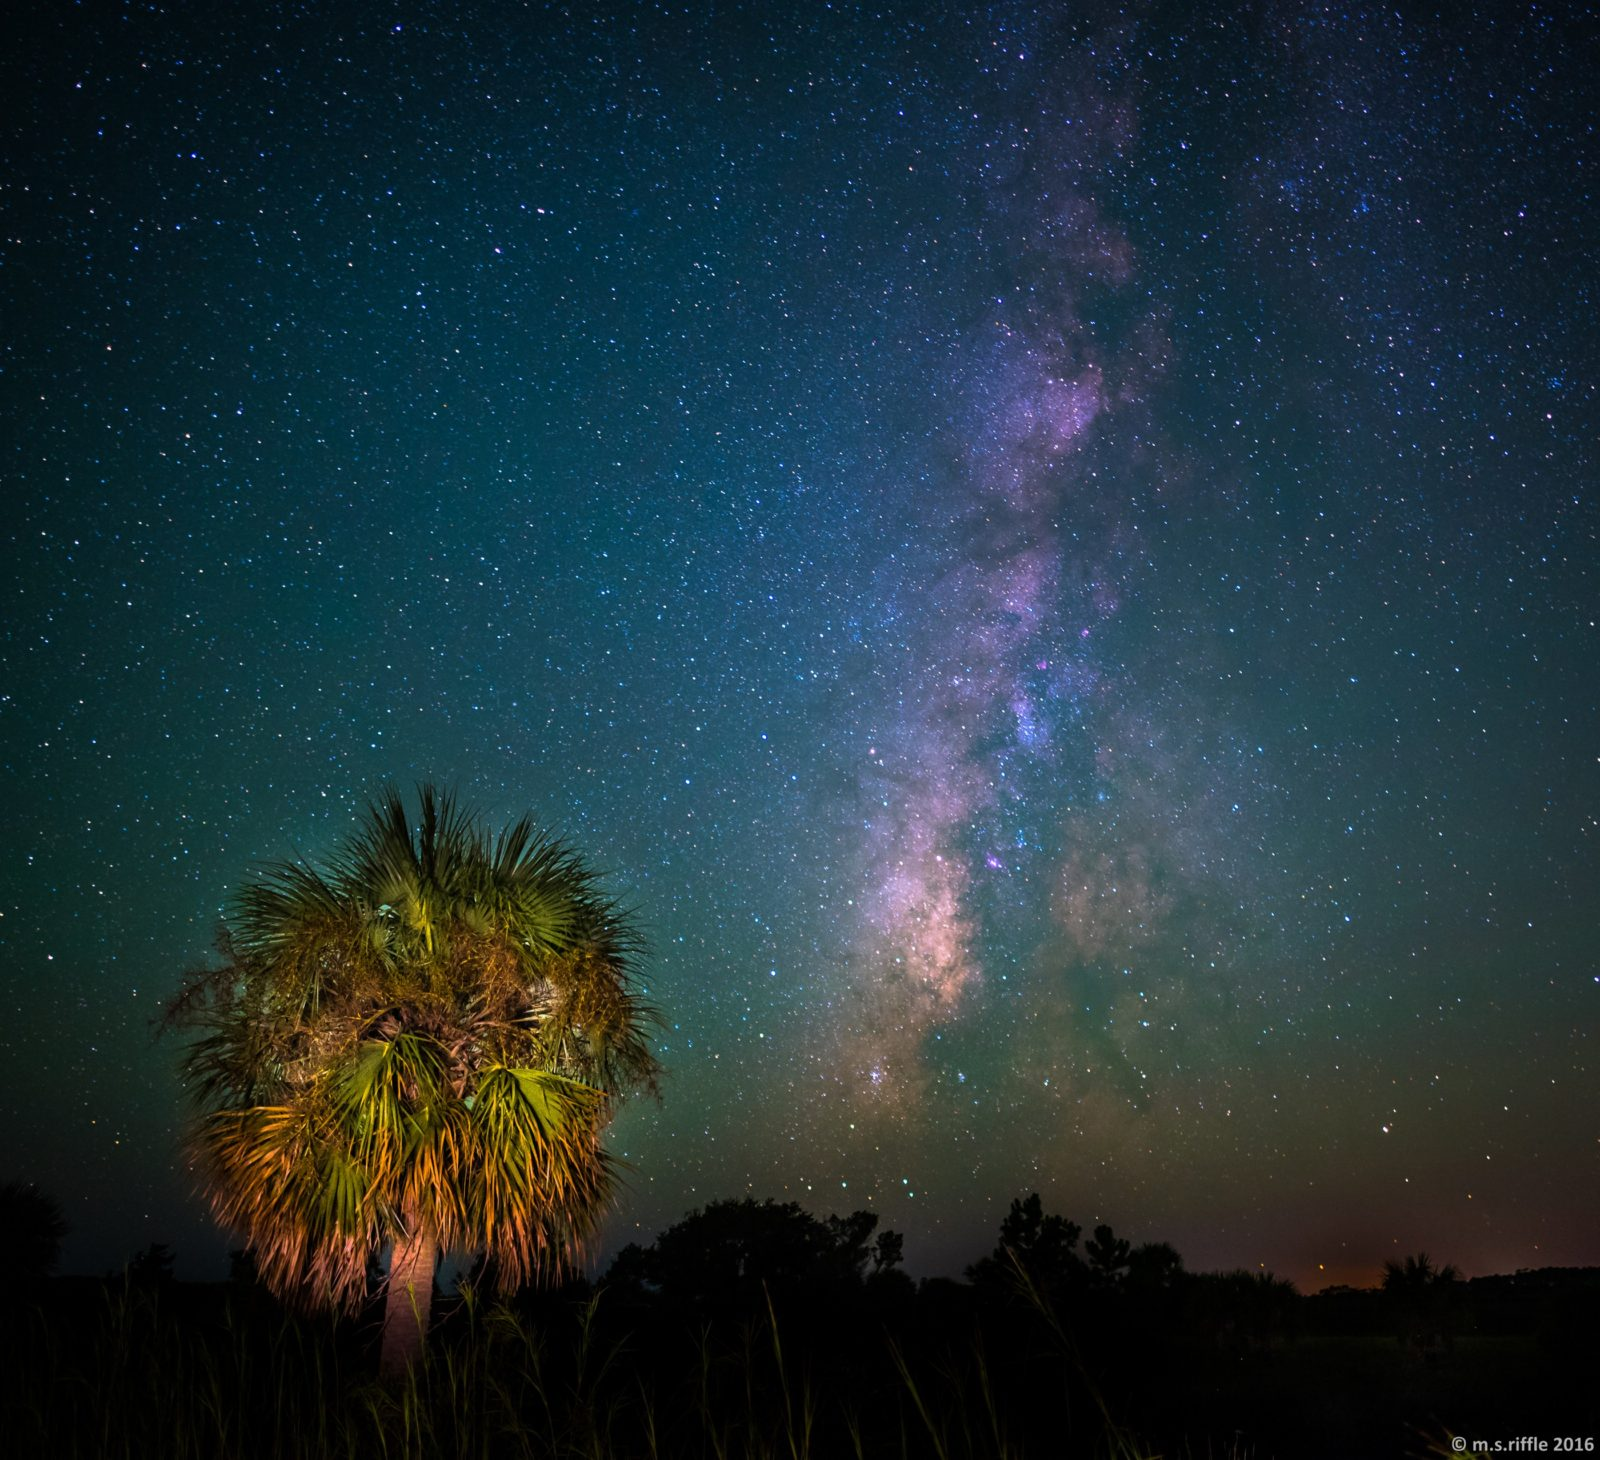 Palm Tree and Milky Way